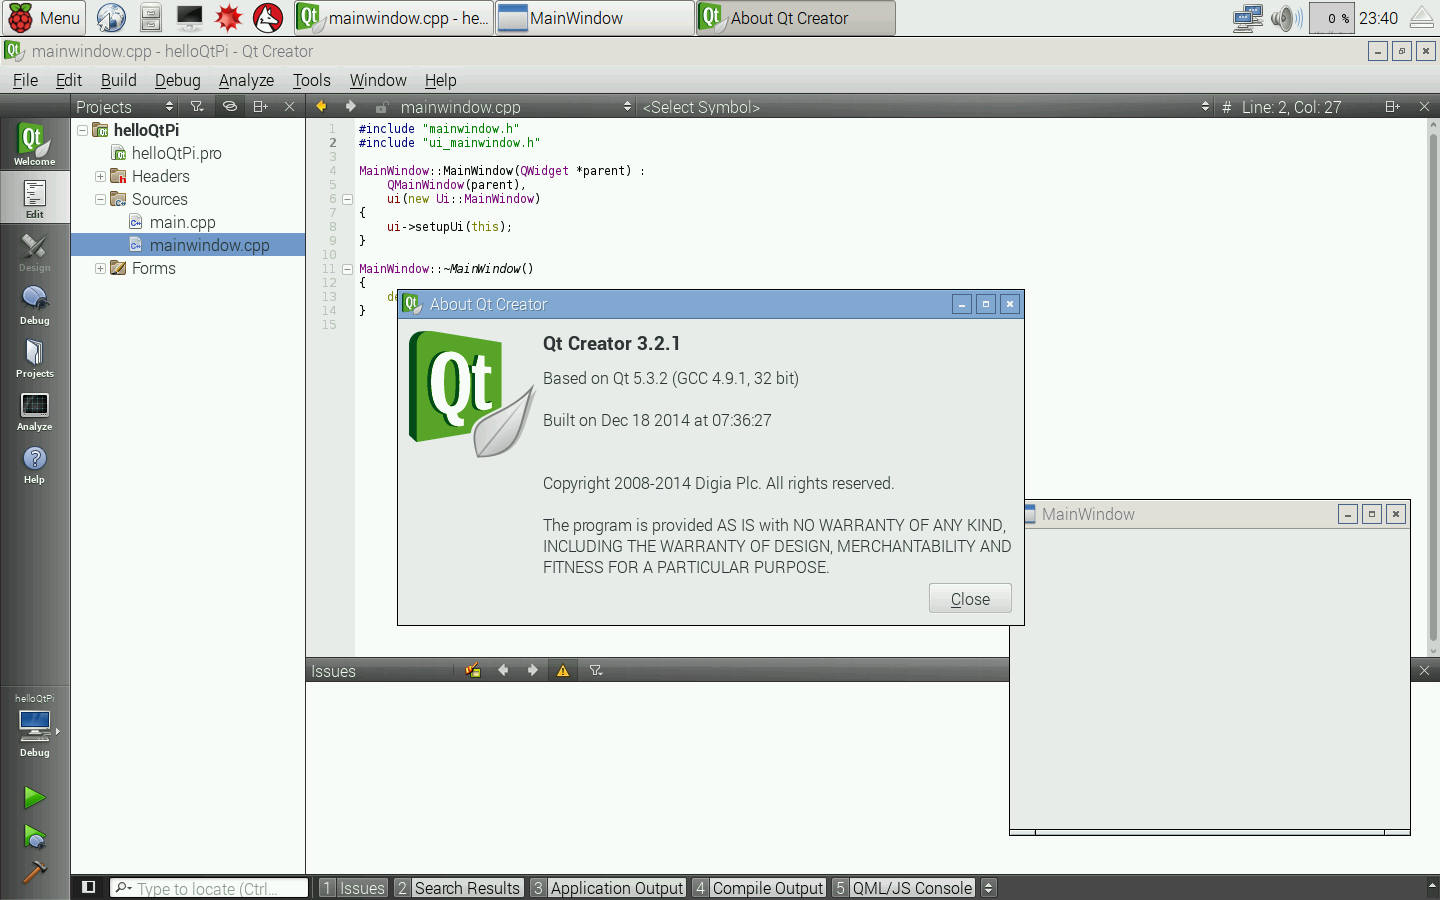 Hello Raspberry Pi: Install Qt5/Qt Creator for Raspberry Pi 2